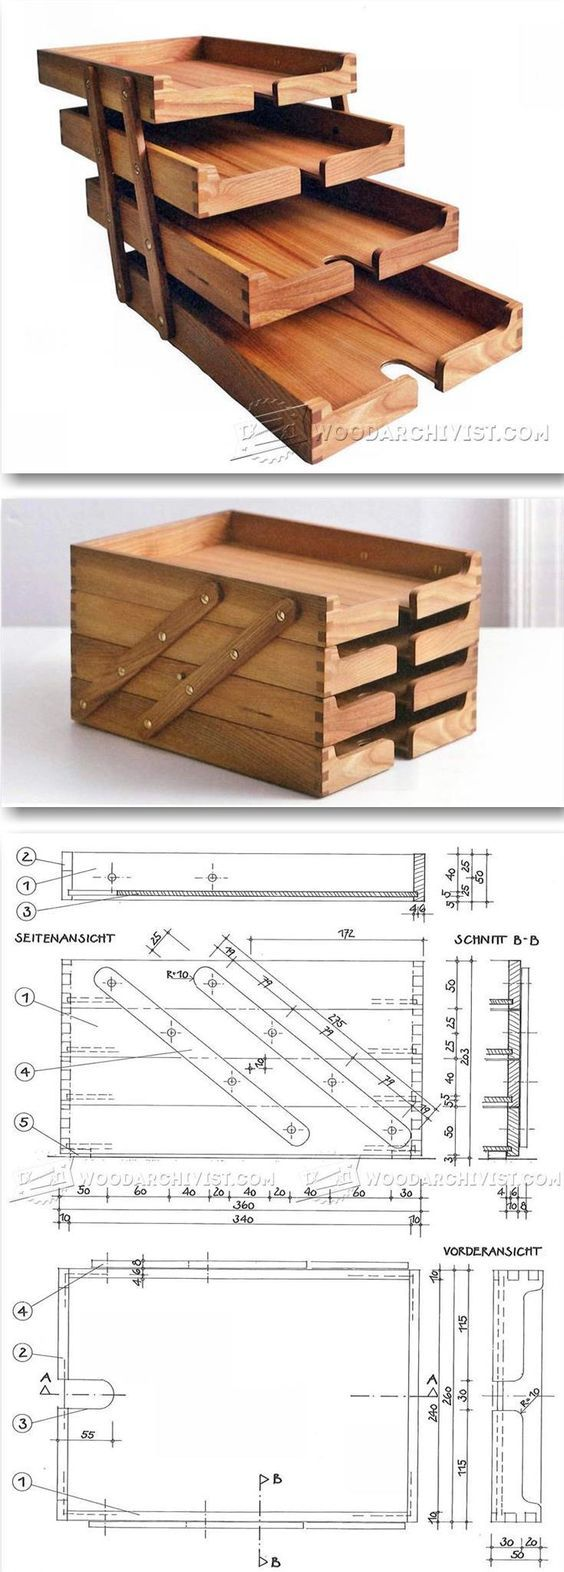 medium resolution of wooden desk tray plans woodworking plans and projects woodarchivist com